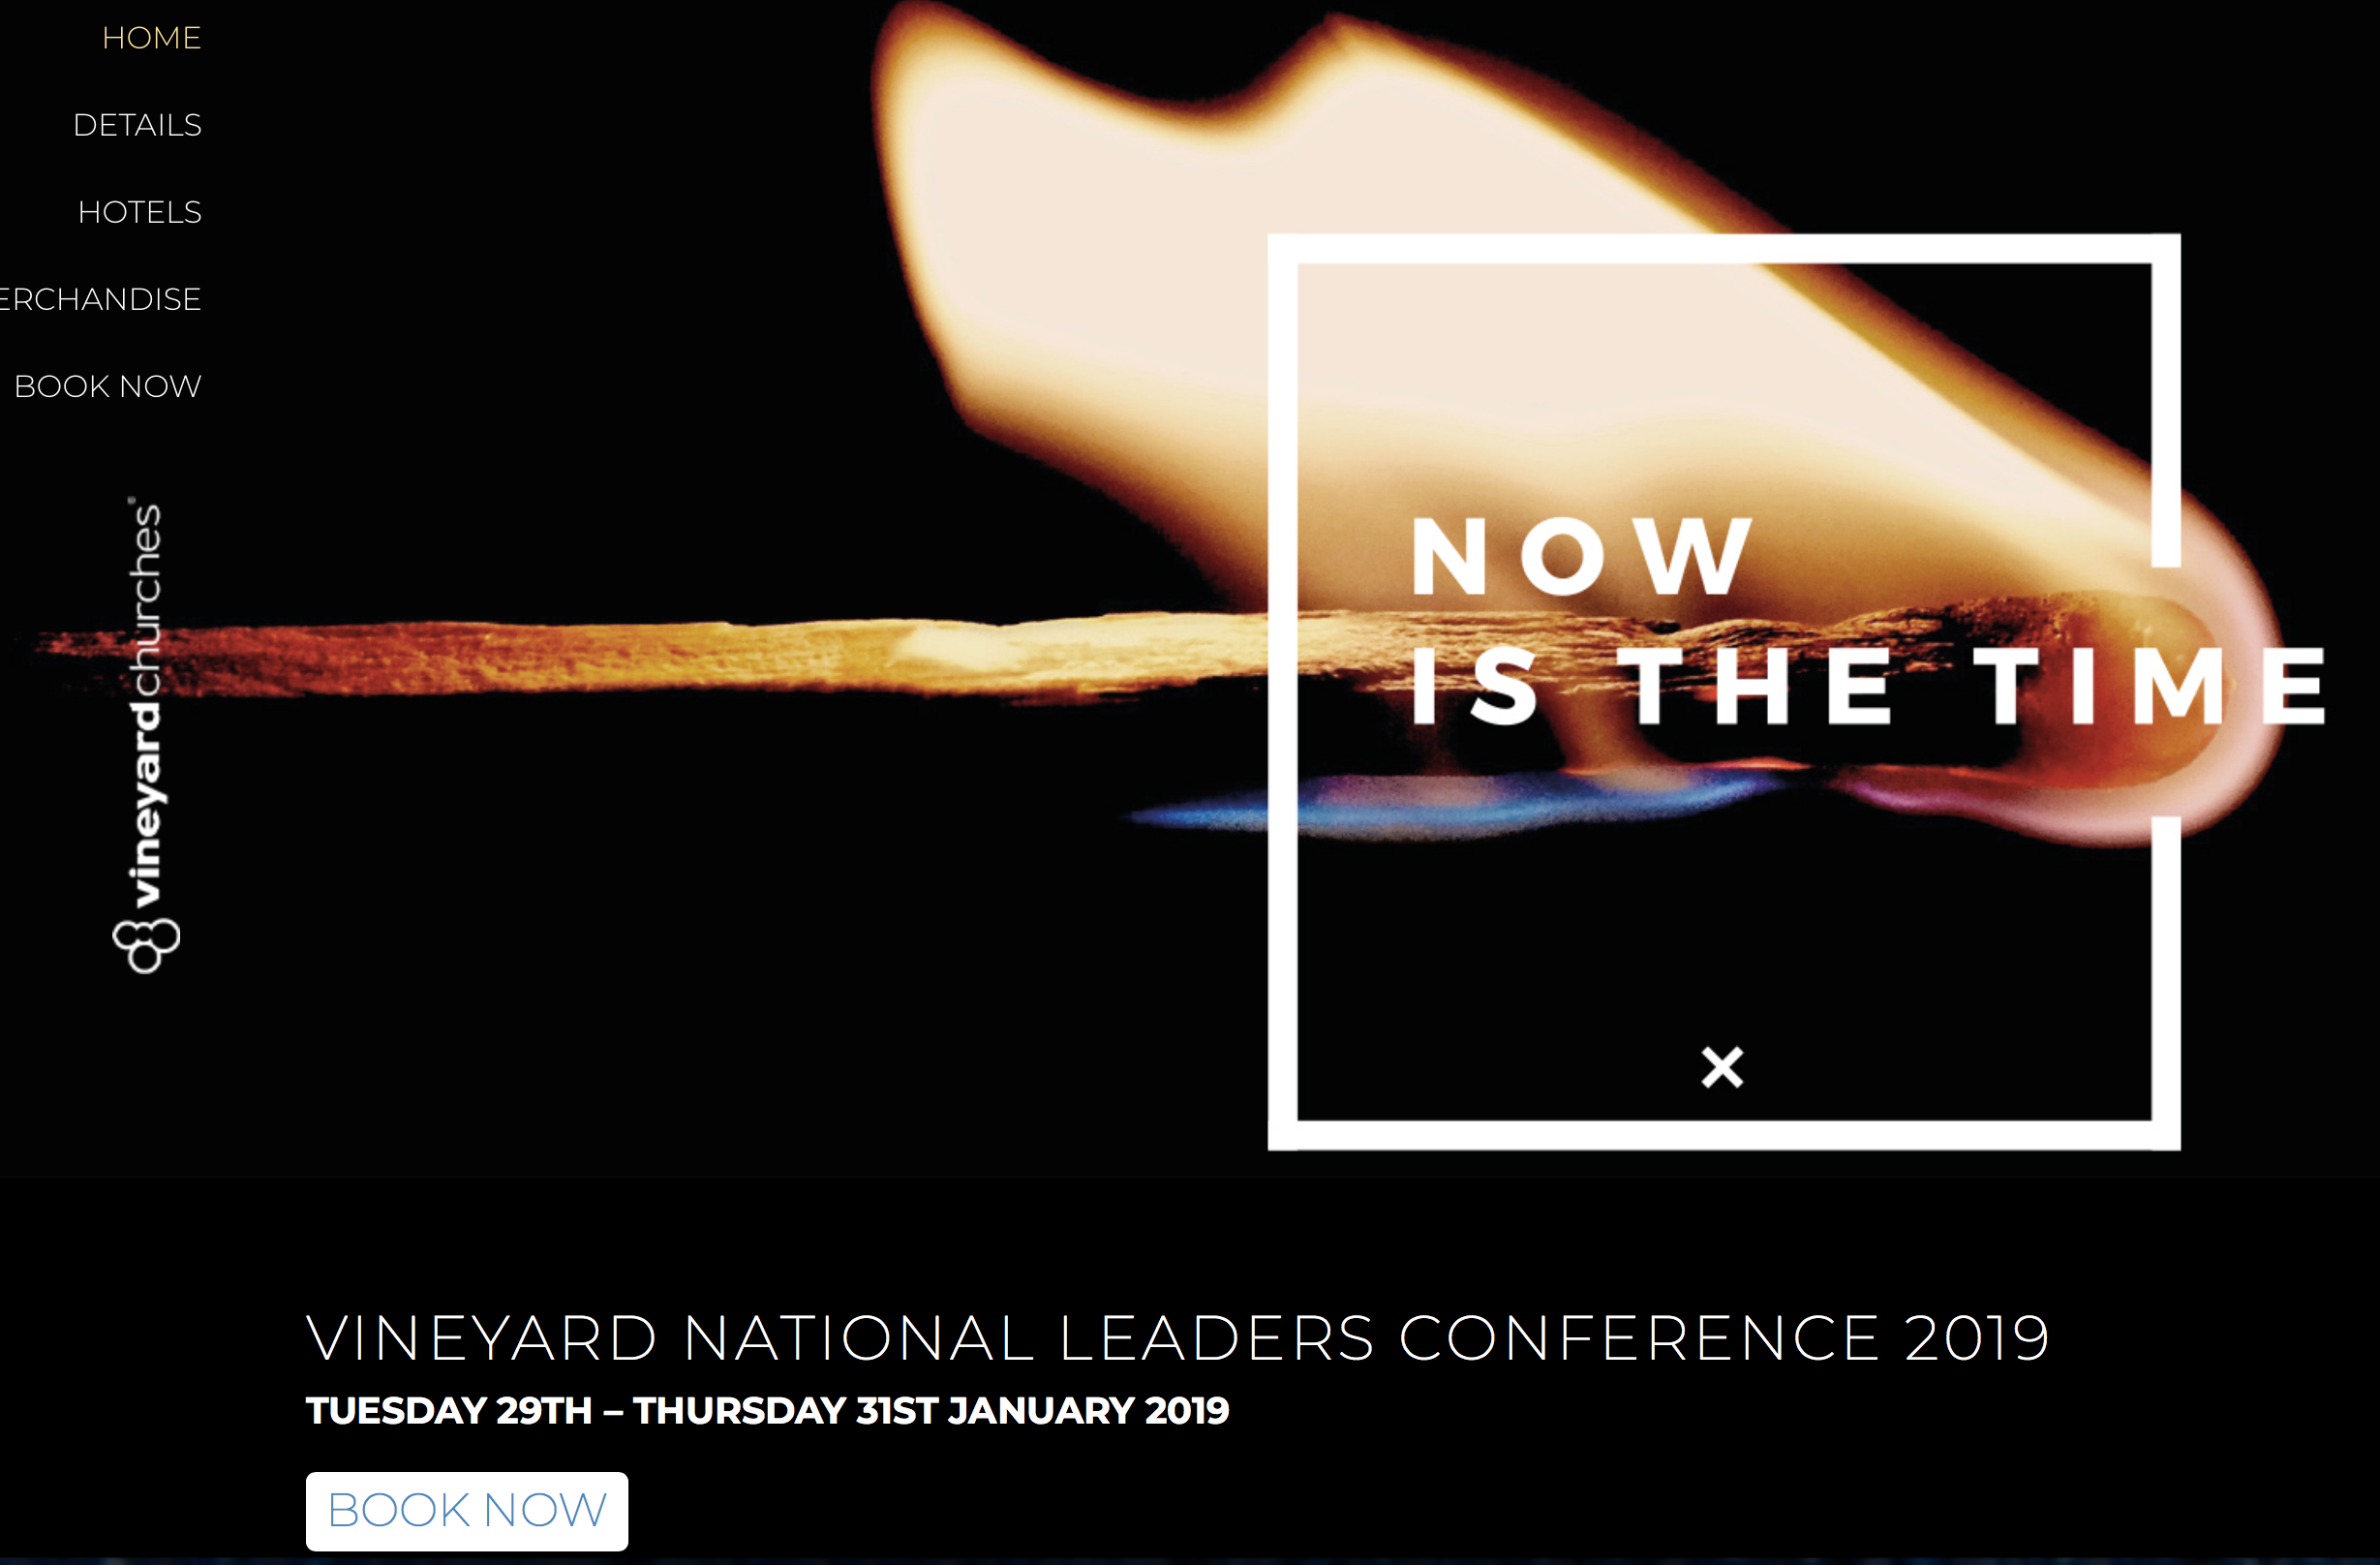 National Leaders Conference 2019